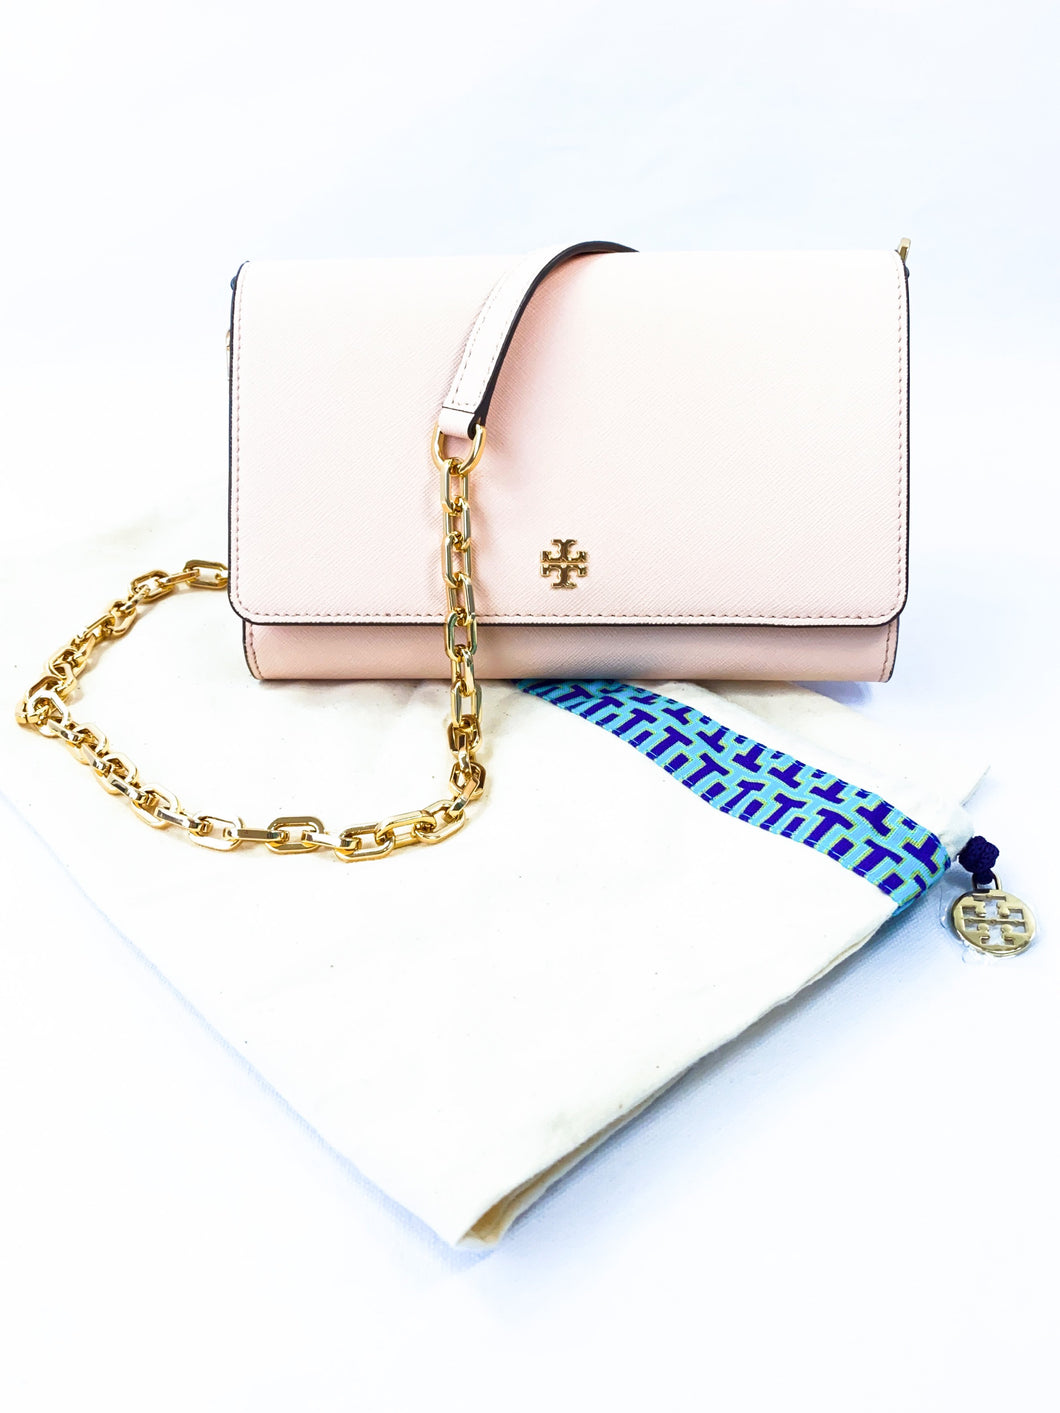 Tory Burch light pink leather chain wallet - My Girlfriend's Wardrobe York Pa